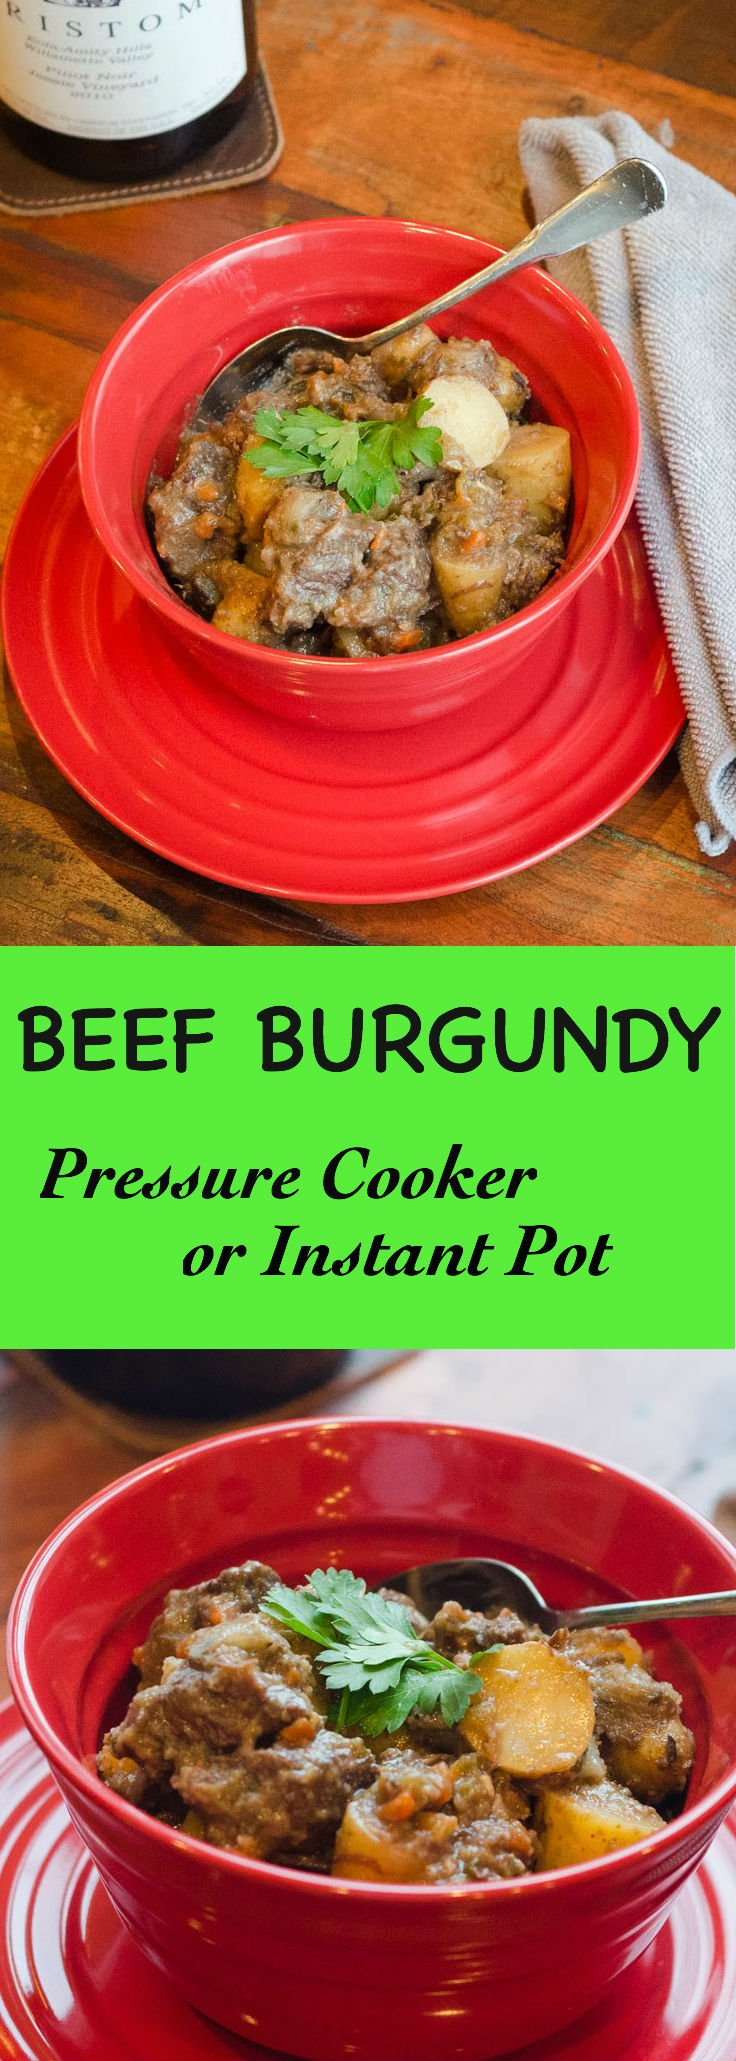 Beef Burgundy in a Pressure Cooker or Instant Pot is amazing....and cuts hours off of the usual crock pot time